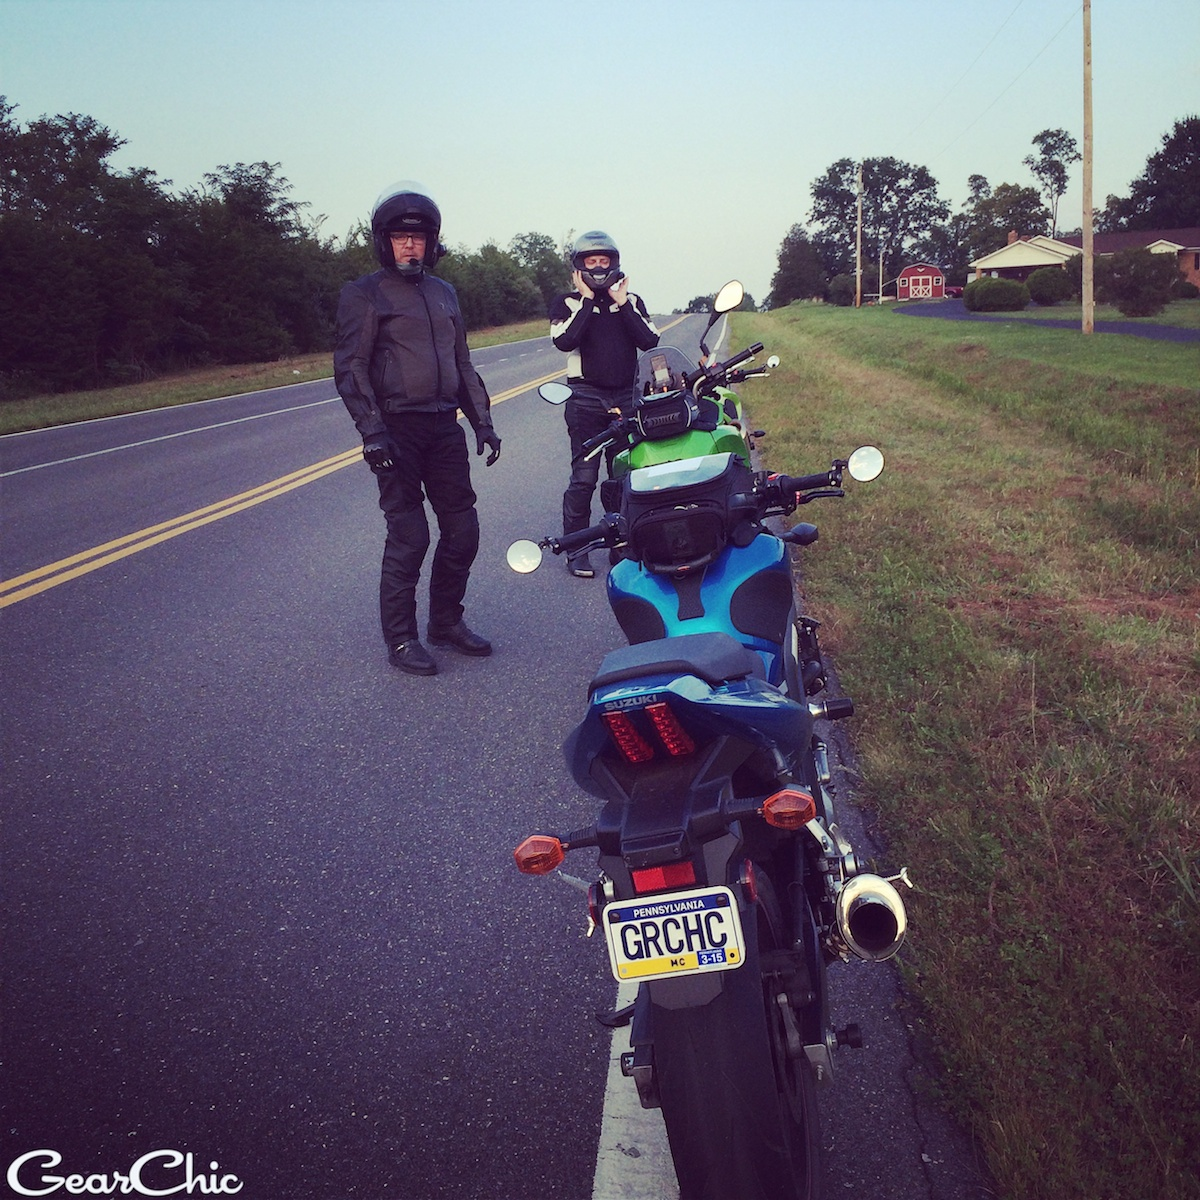 riding_with_friends 1